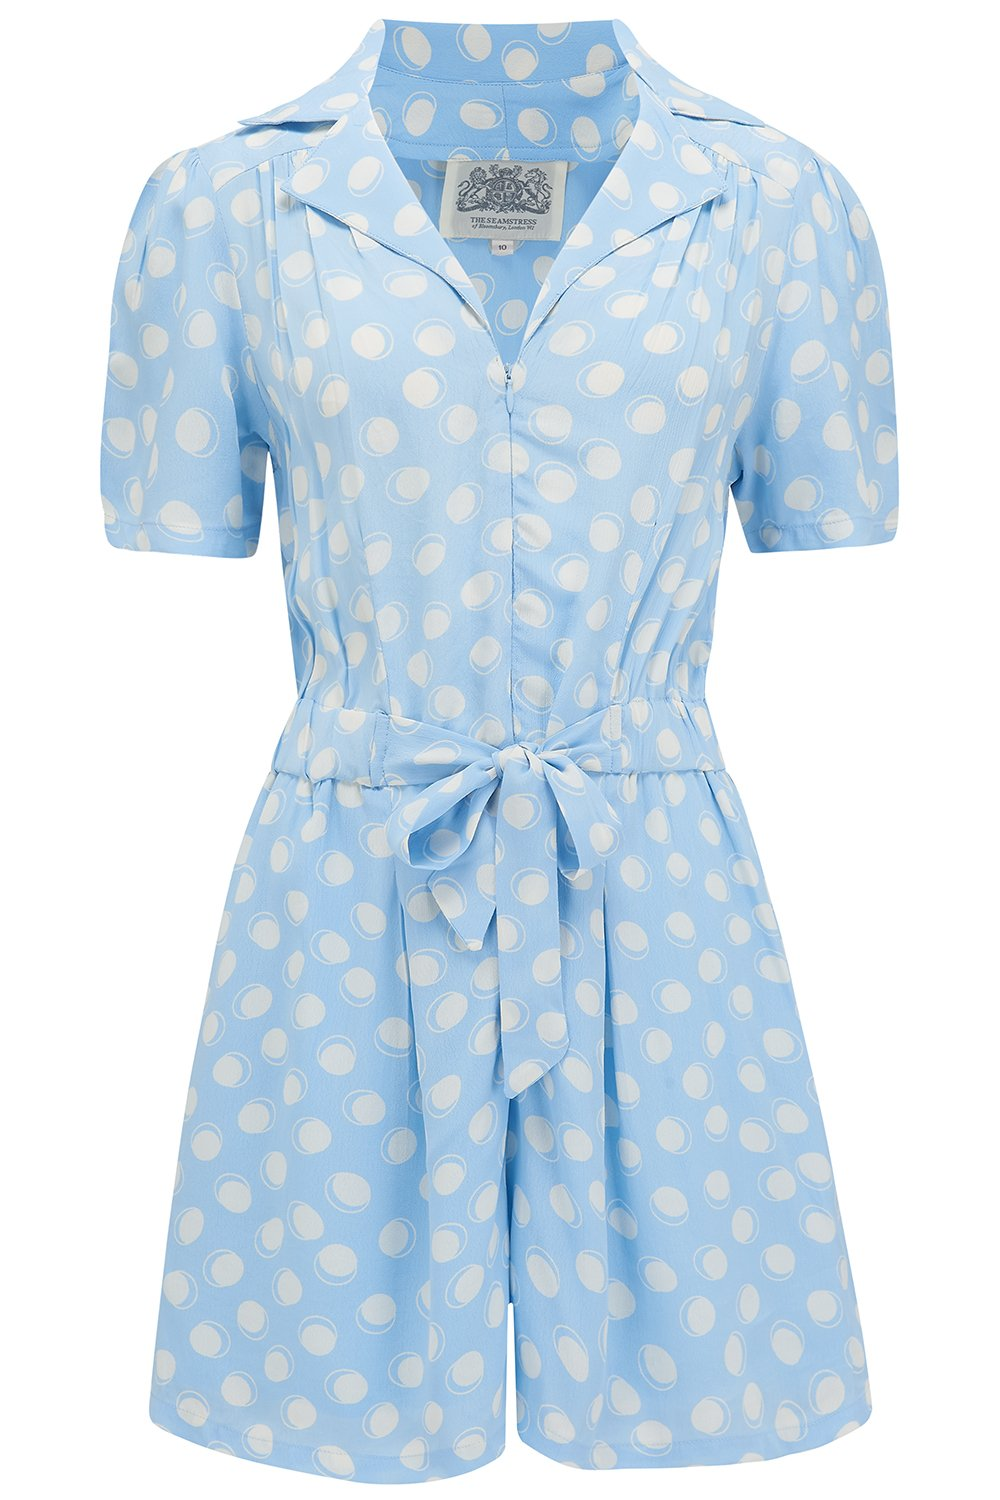 40s-50s Vintage Playsuits, Jumpsuits, Rompers History Emma Playsuit  Powder Sky Blue Moonshine by The Seamstress of Bloomsbury Classic 1940s Vintage Style £79.01 AT vintagedancer.com